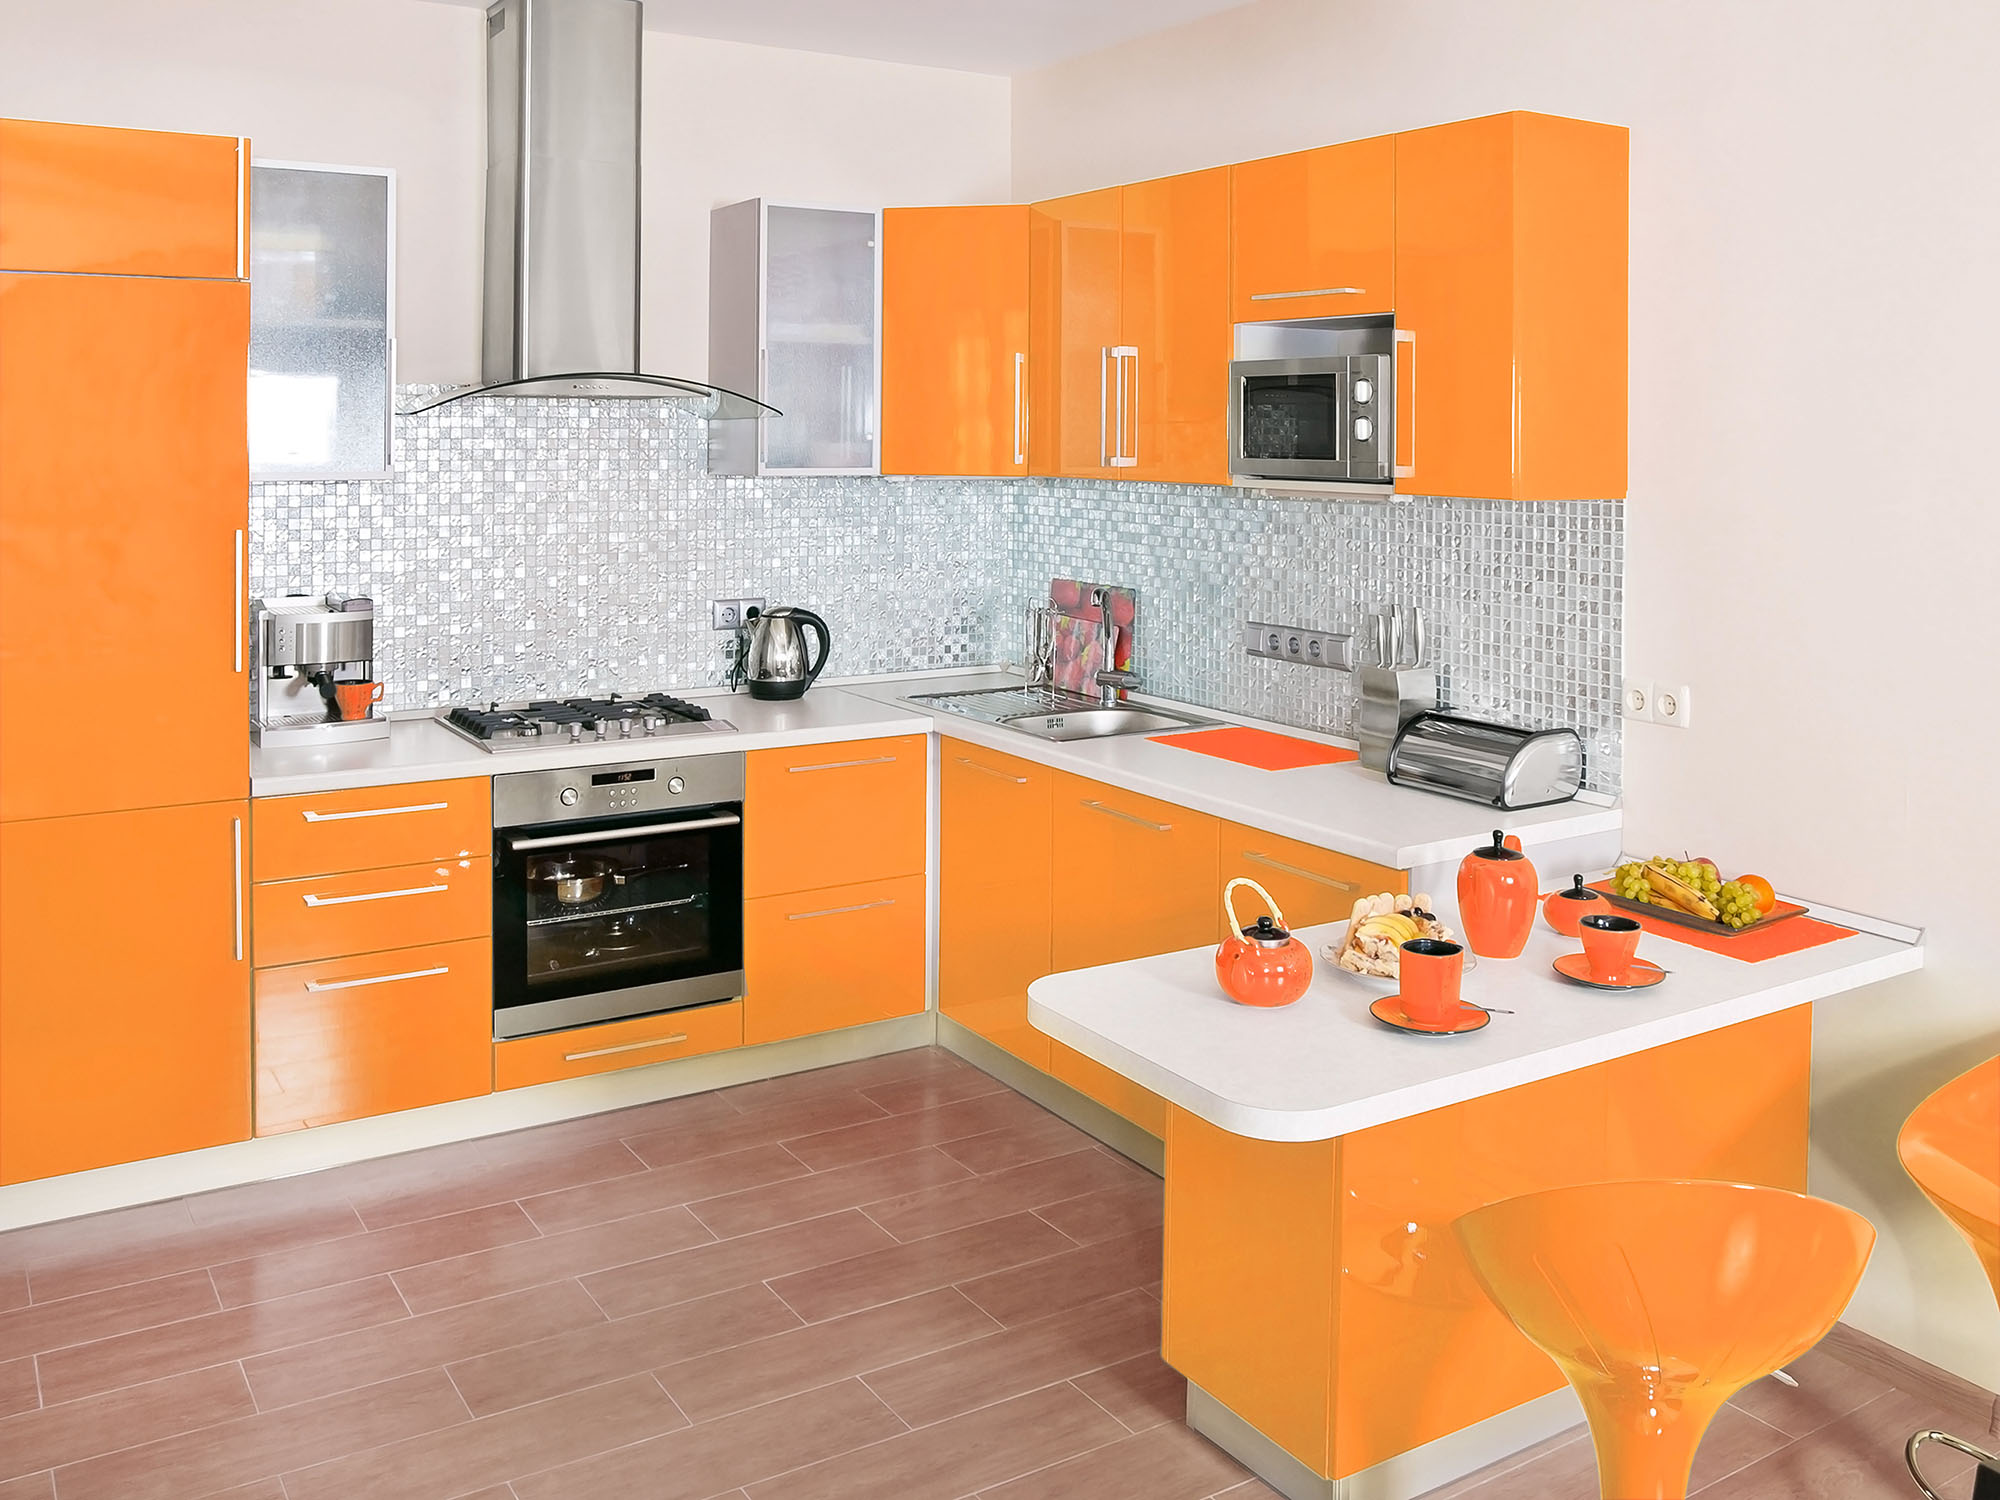 Modern kitchen interior with orange decoration